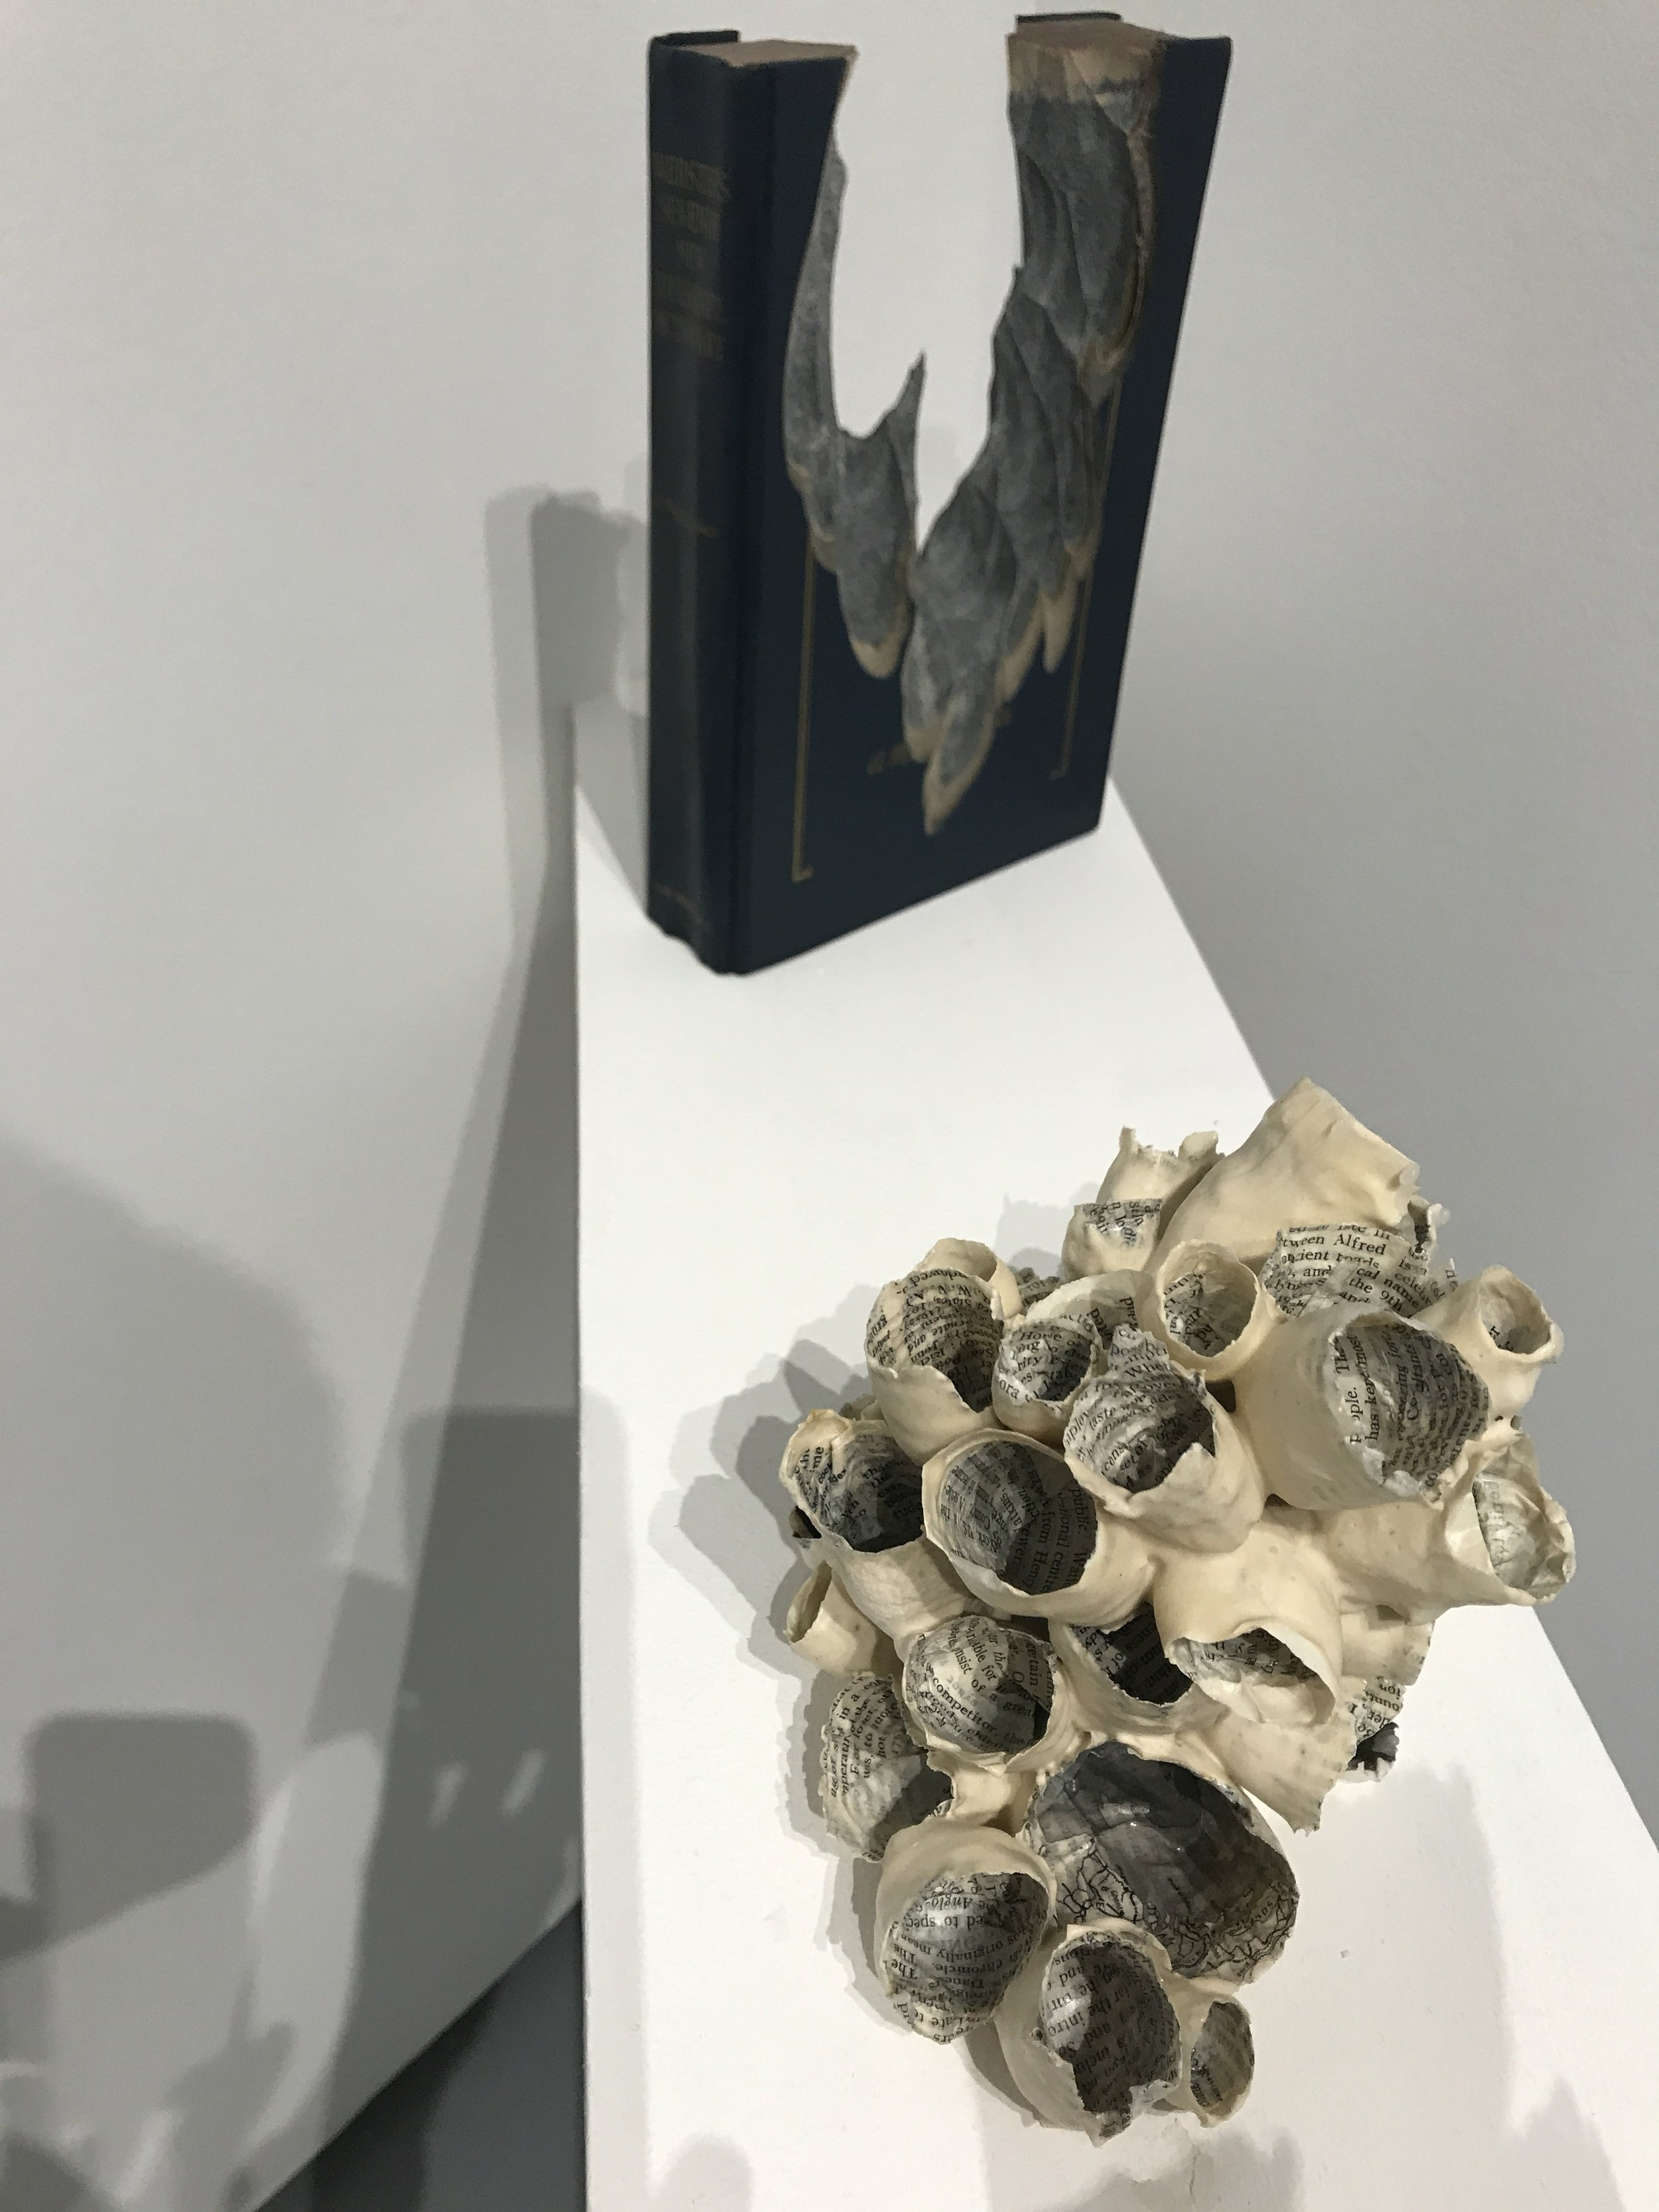 Wax was used in these book art pieces by Jessica Drenk, 2017, Galleri Urbane Dallas.